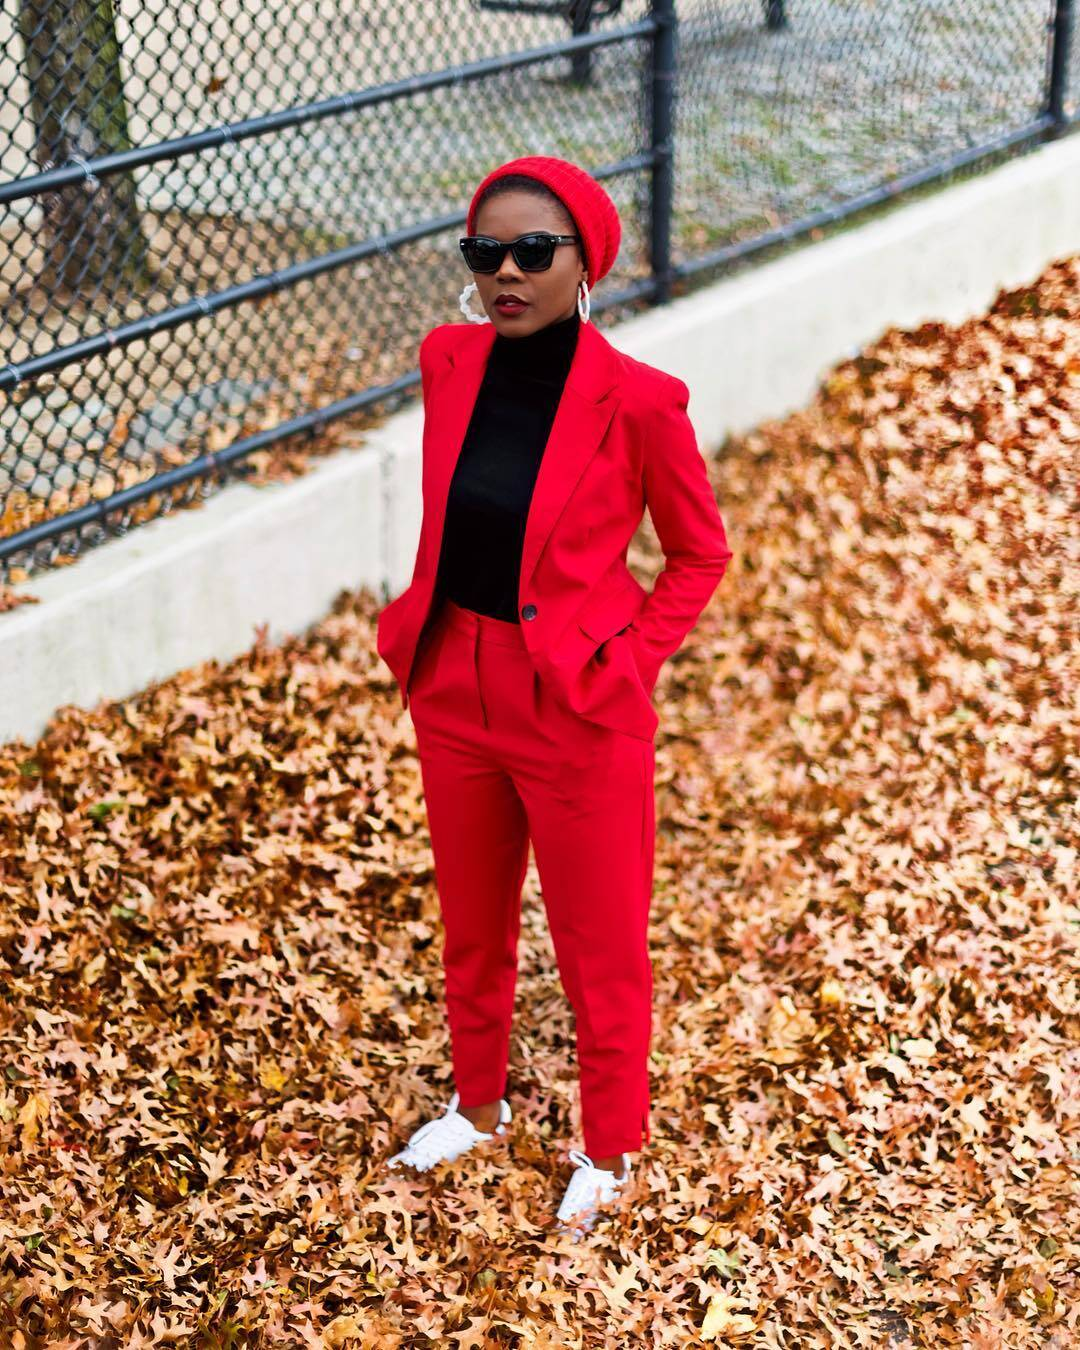 Styling a red suit